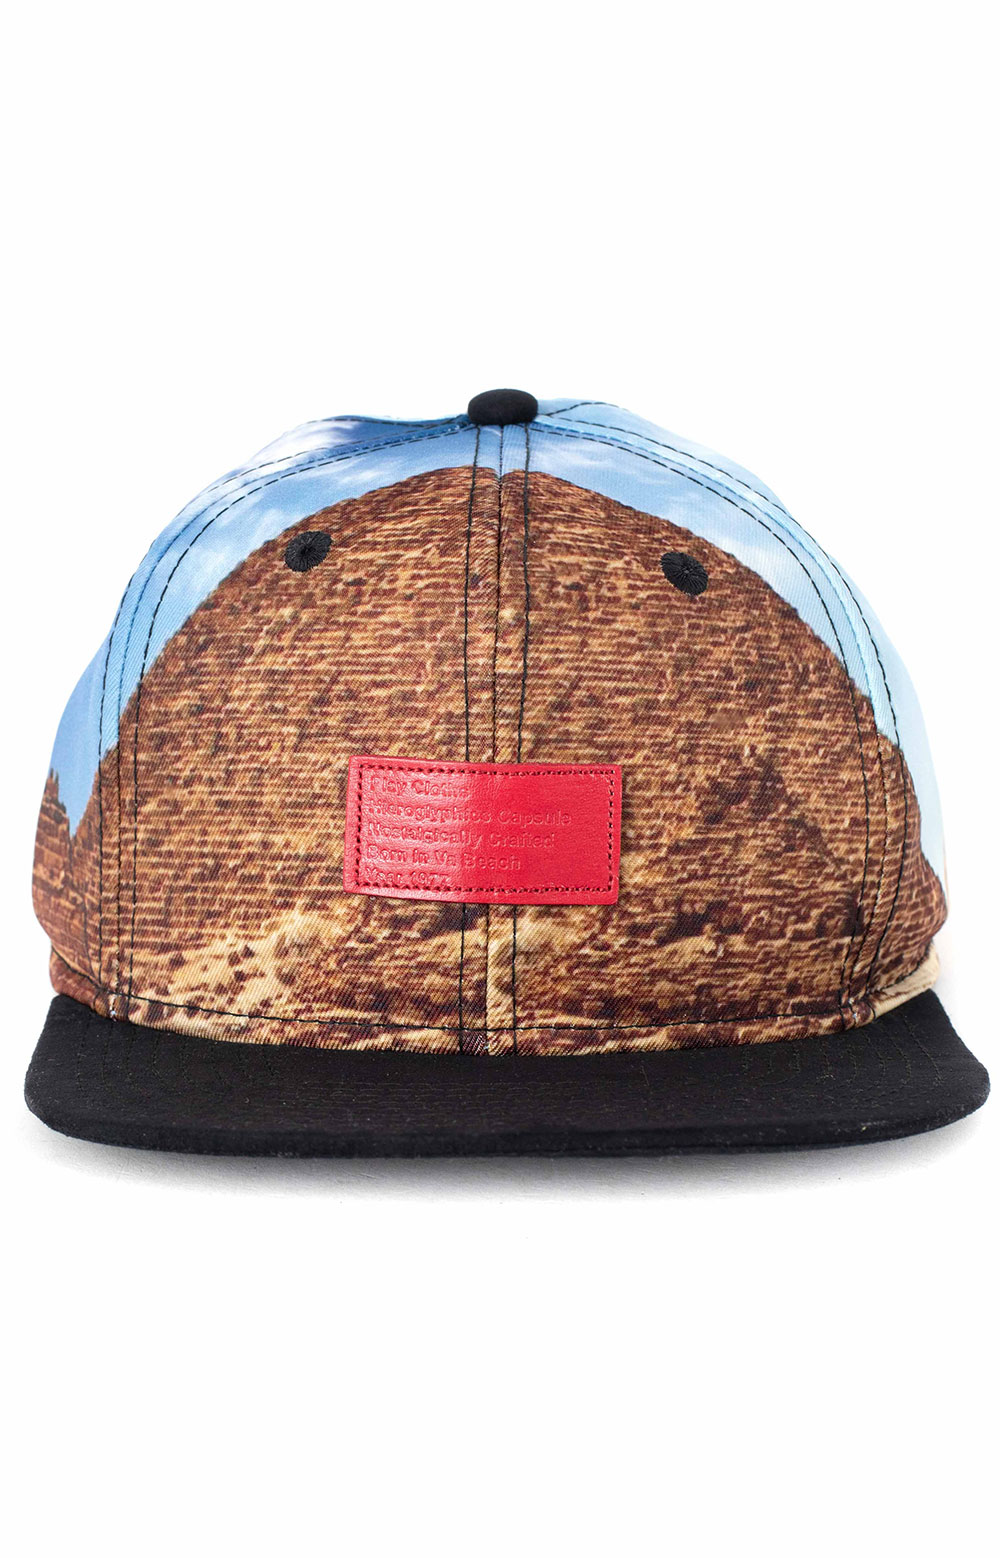 Kngs Tomb Strap-Back Hat  2